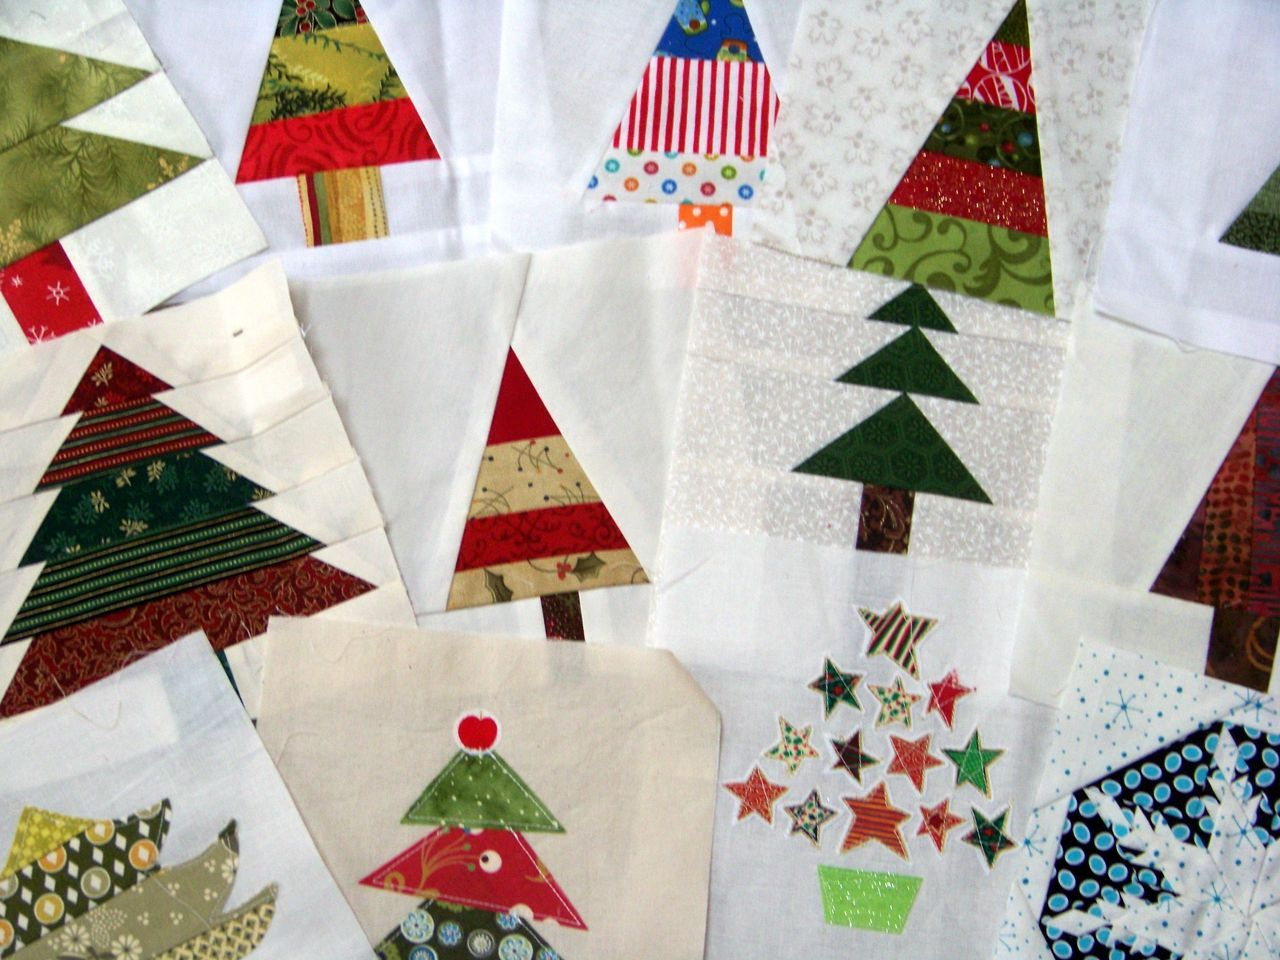 Attic Window Quilt Shop: AROUND THE WORLD QUILTING BEE | Quilts ...